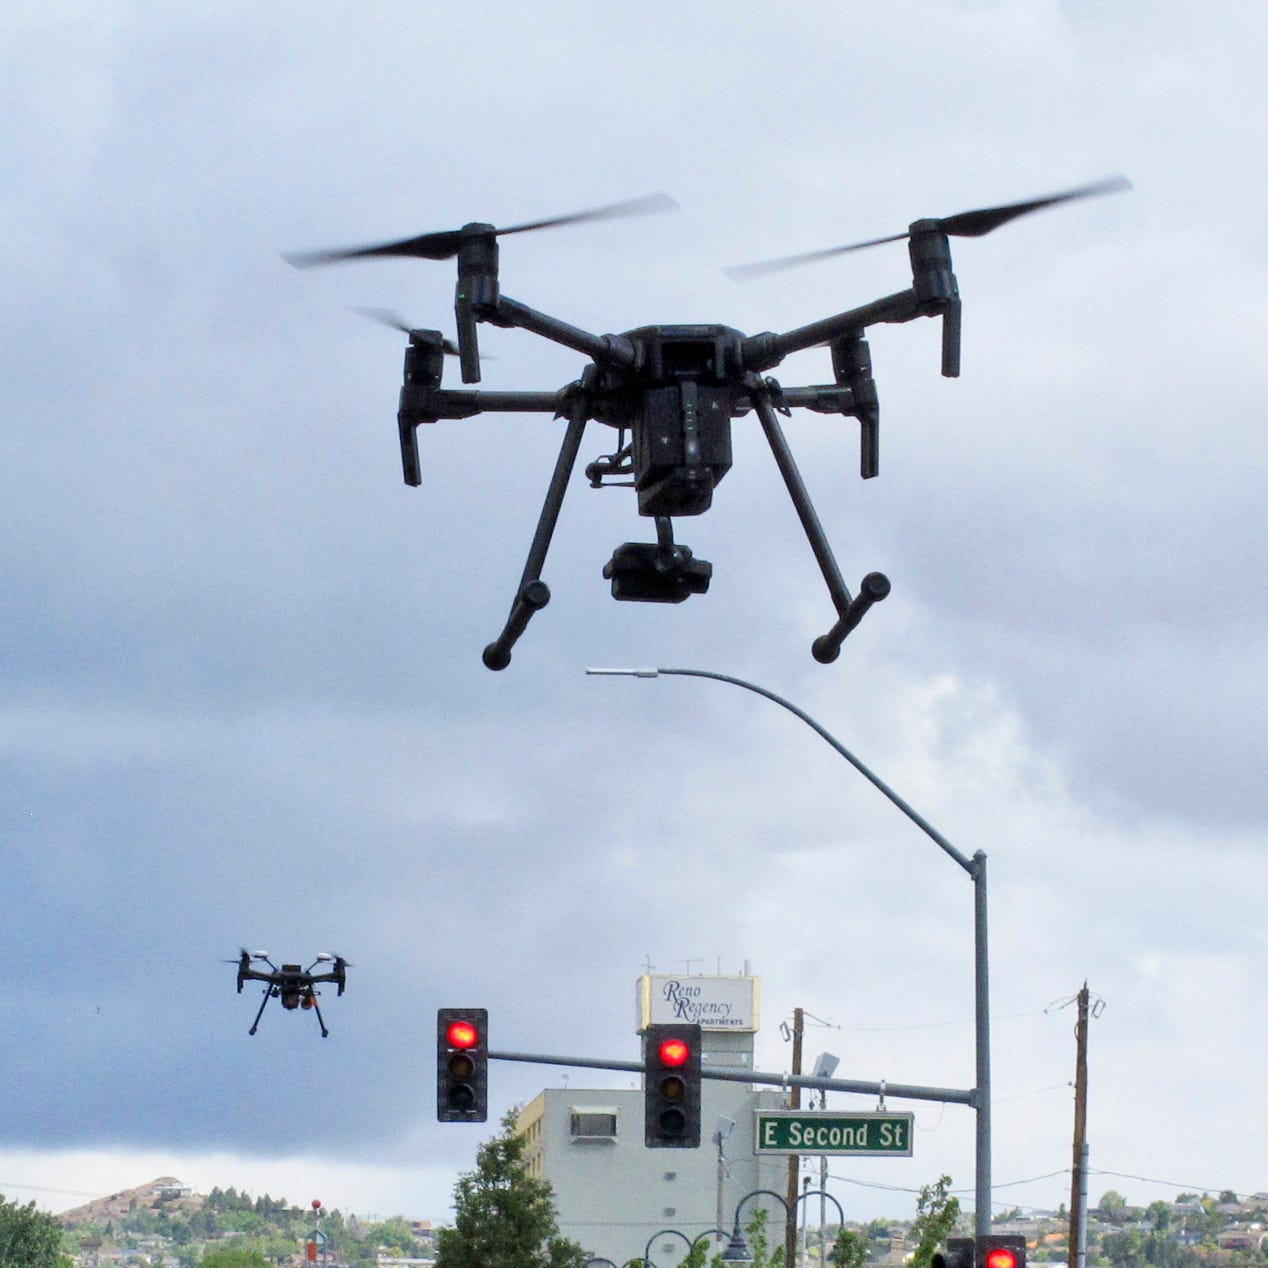 NASA's tests look to manage drones in cities